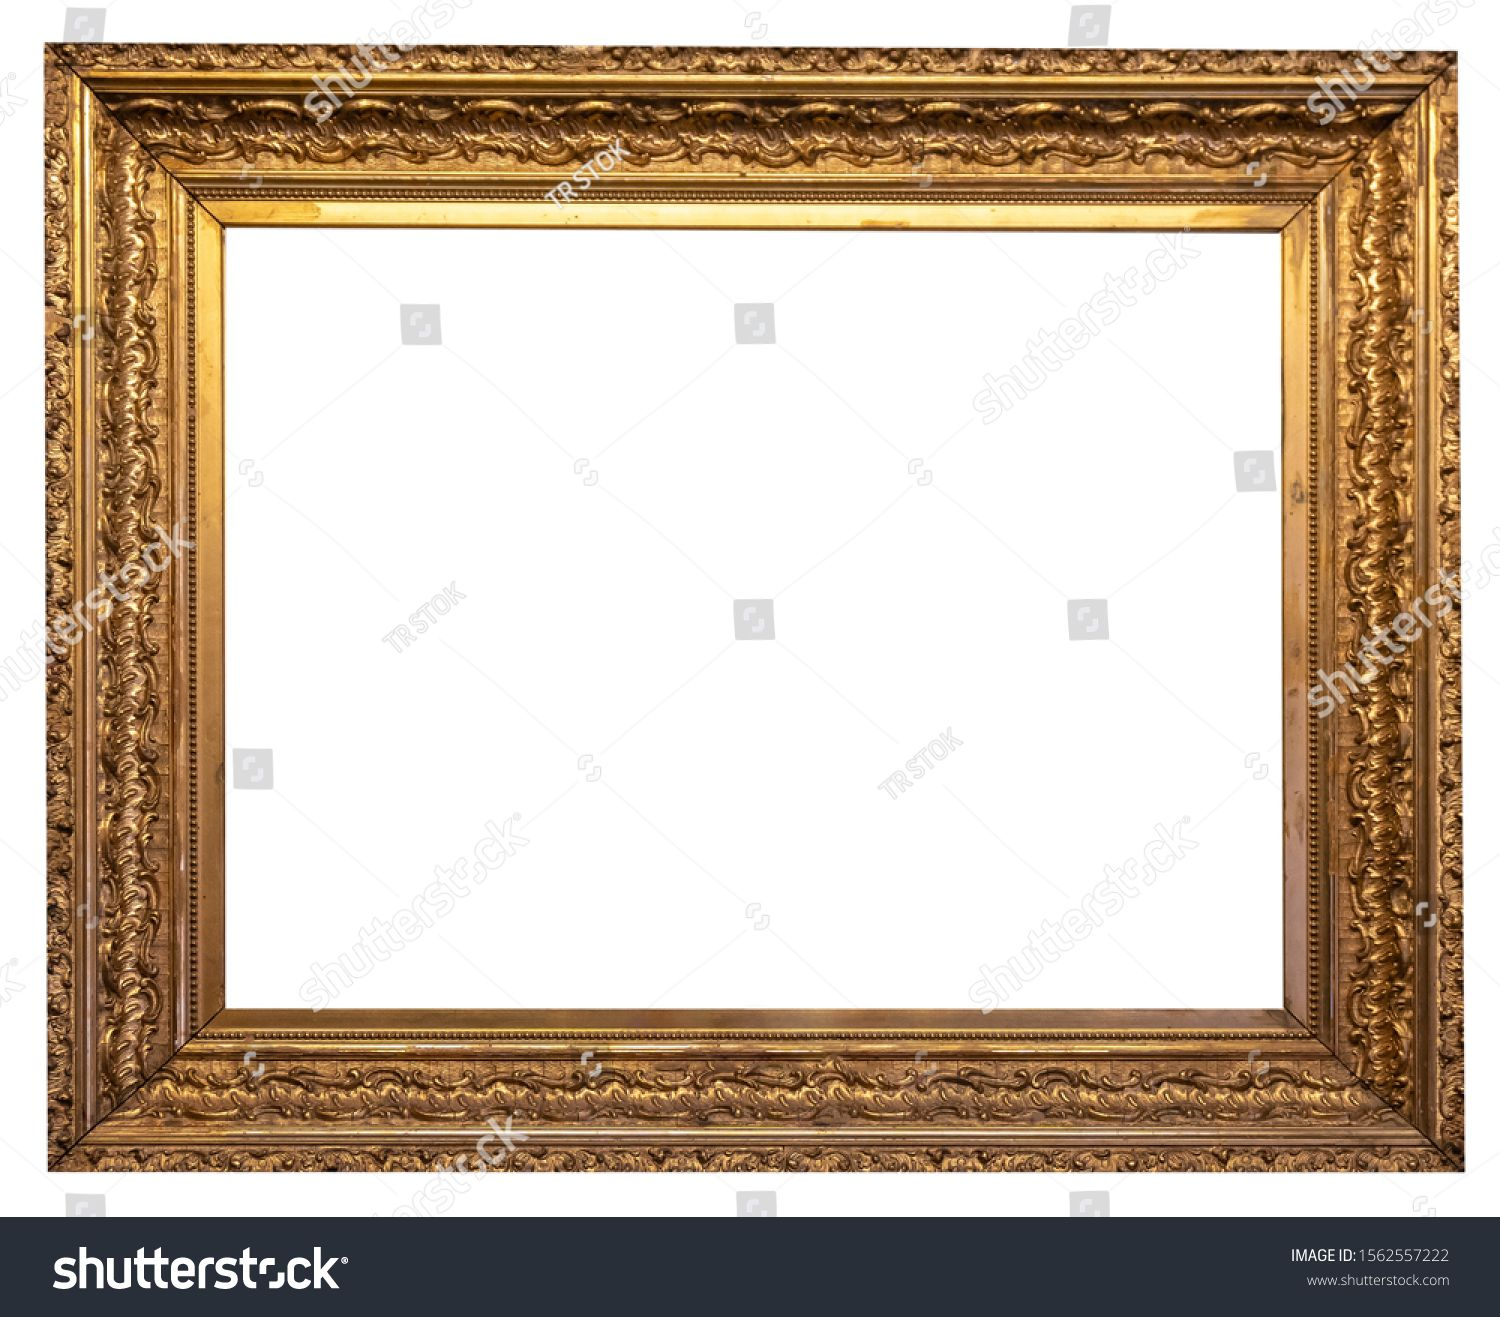 Gold Vintage Beautiful Picture Frame Isolated On White Background Sponsored Affiliate Beautiful Picture Gold Vintage Pop Art Frame Picture Frames